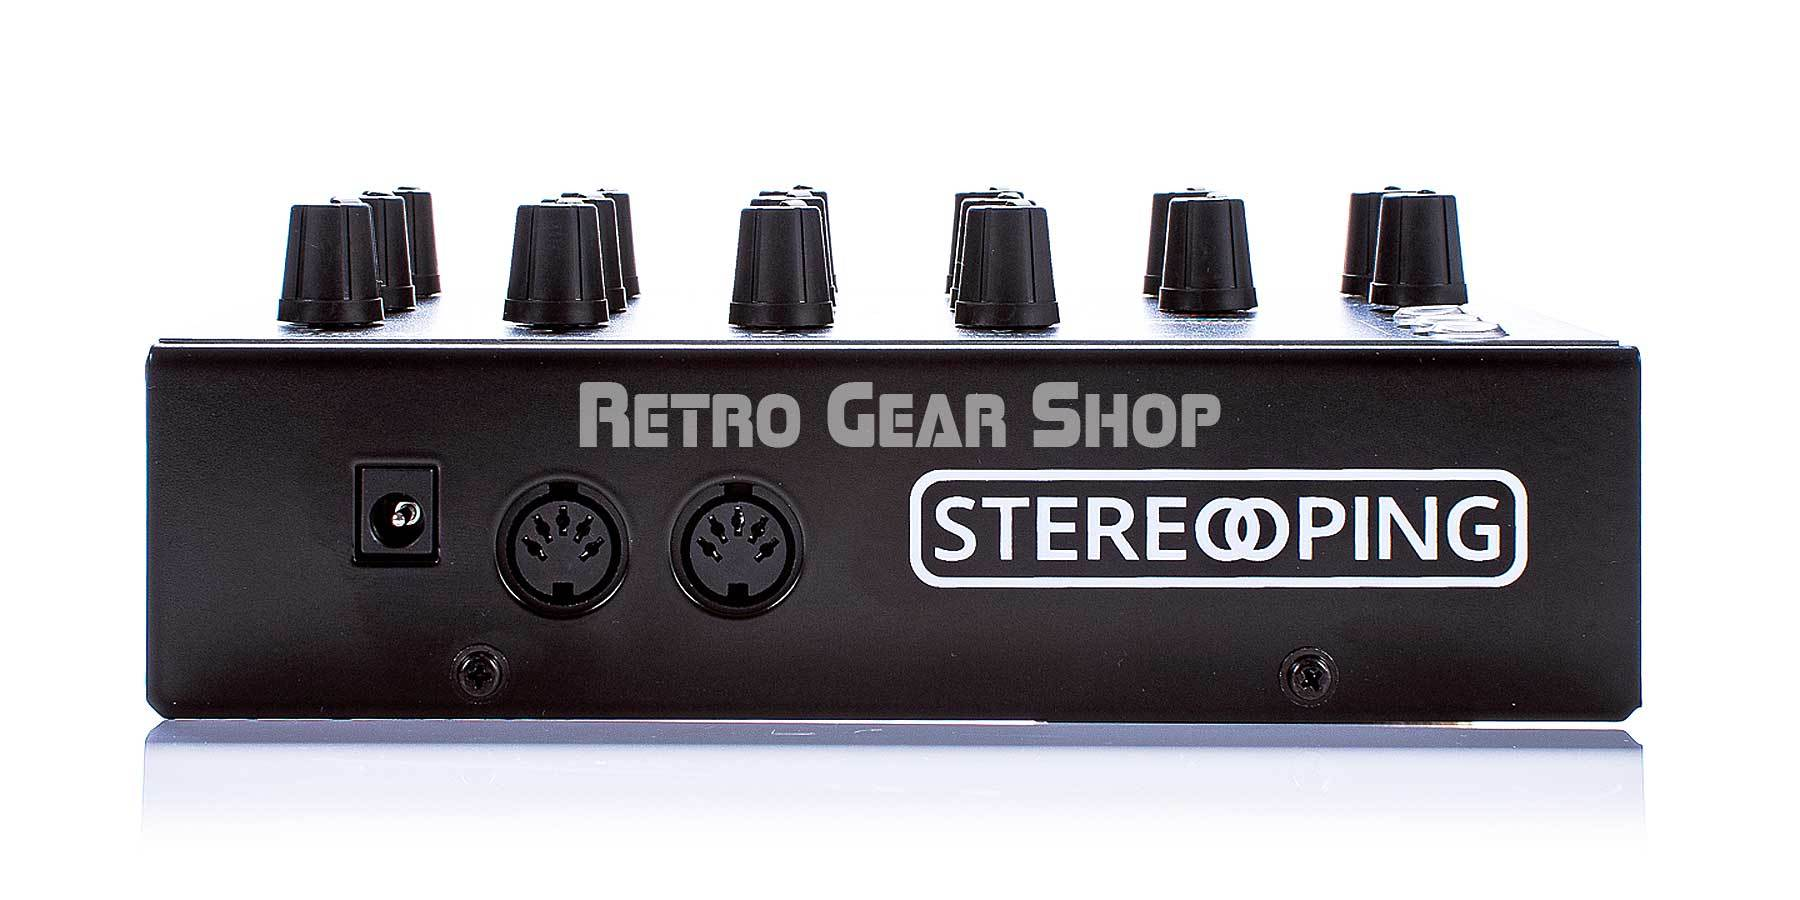 Stereoping CE-1 Puls Midi Controller Rear